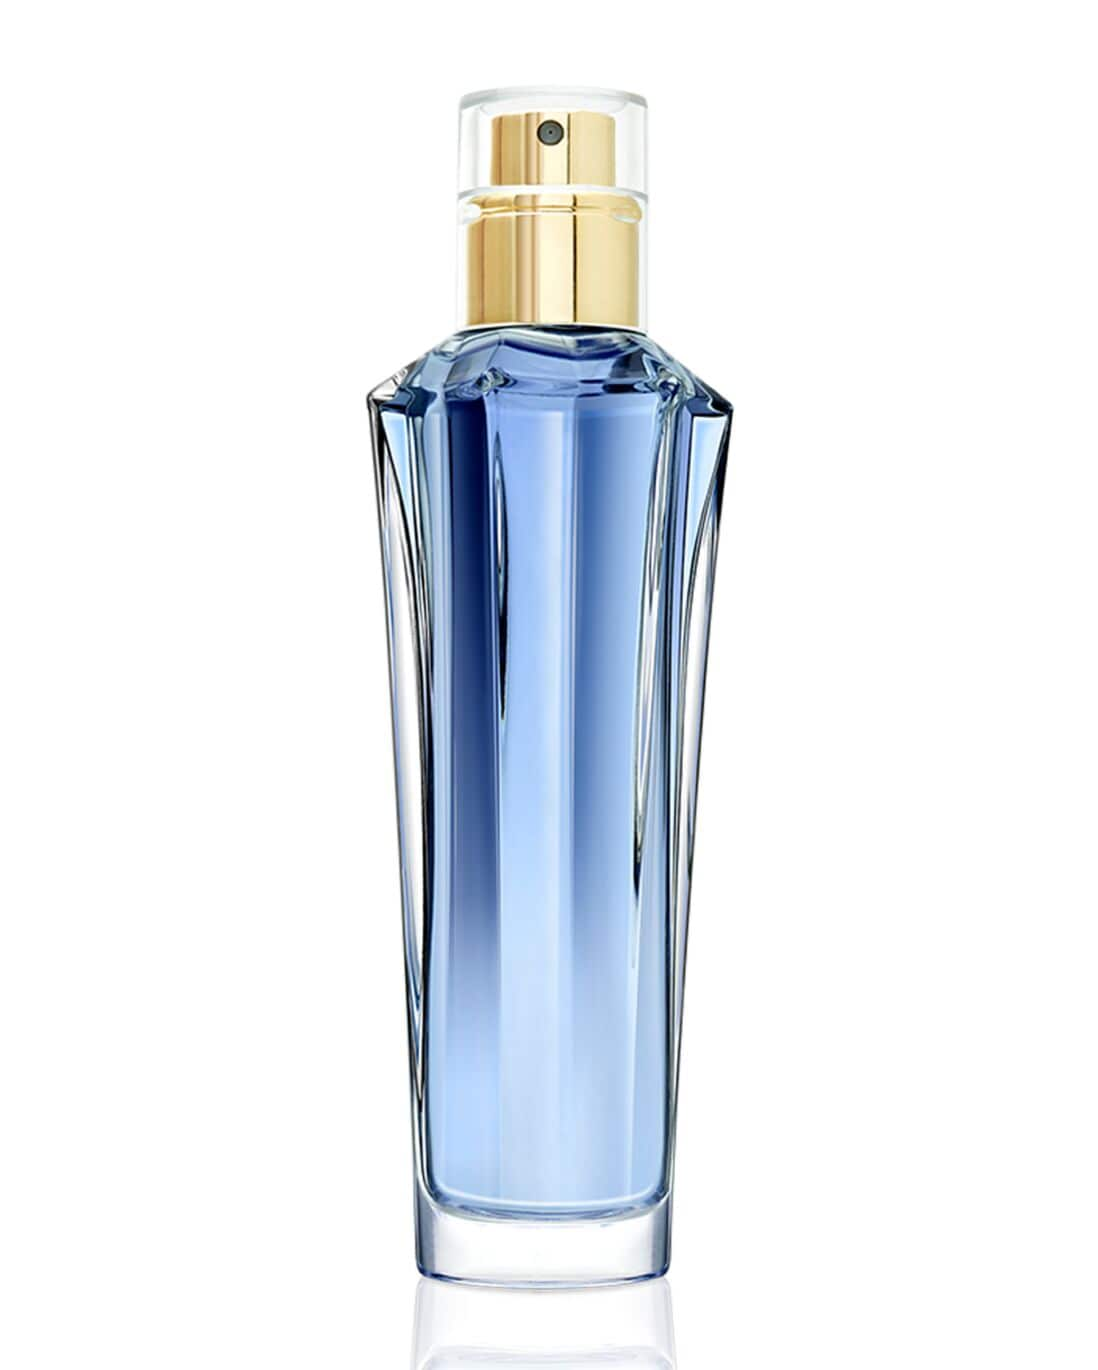 Perfume Dream Shakira Eau de Toilette 30ml